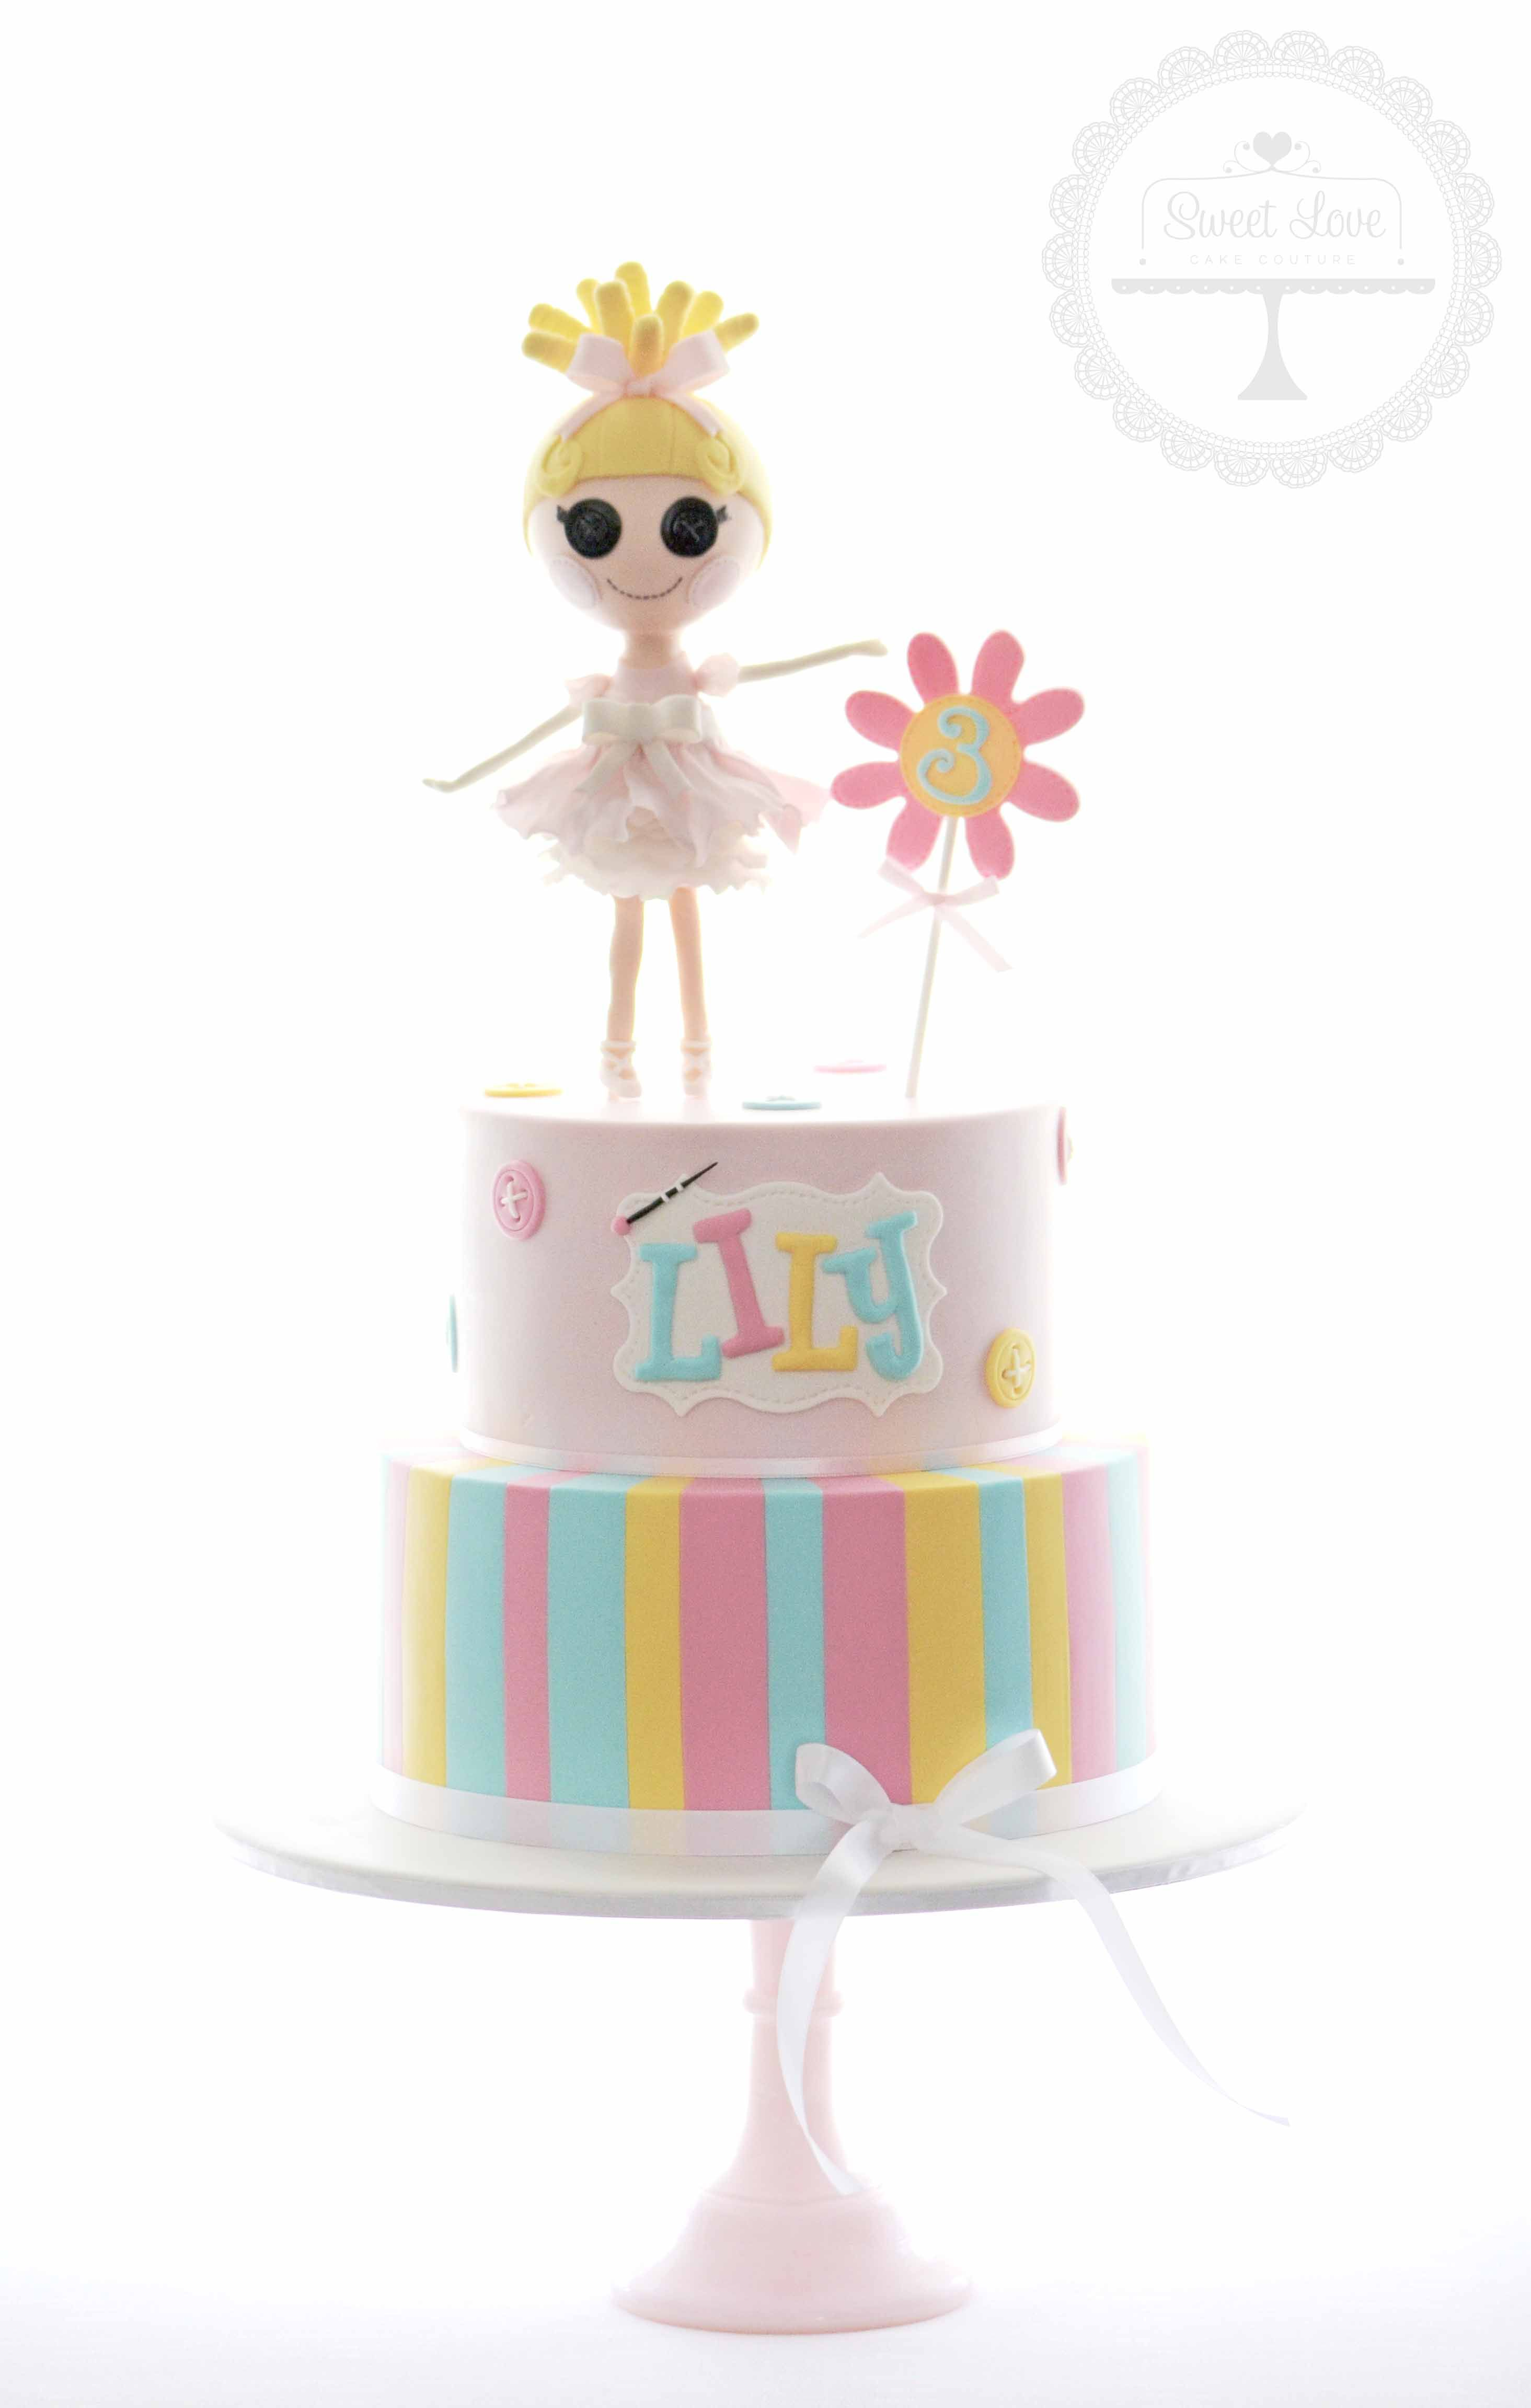 Children's Cakes | Sweet Love Cake Couture - Coffs Harbour Wedding Cake Specialist